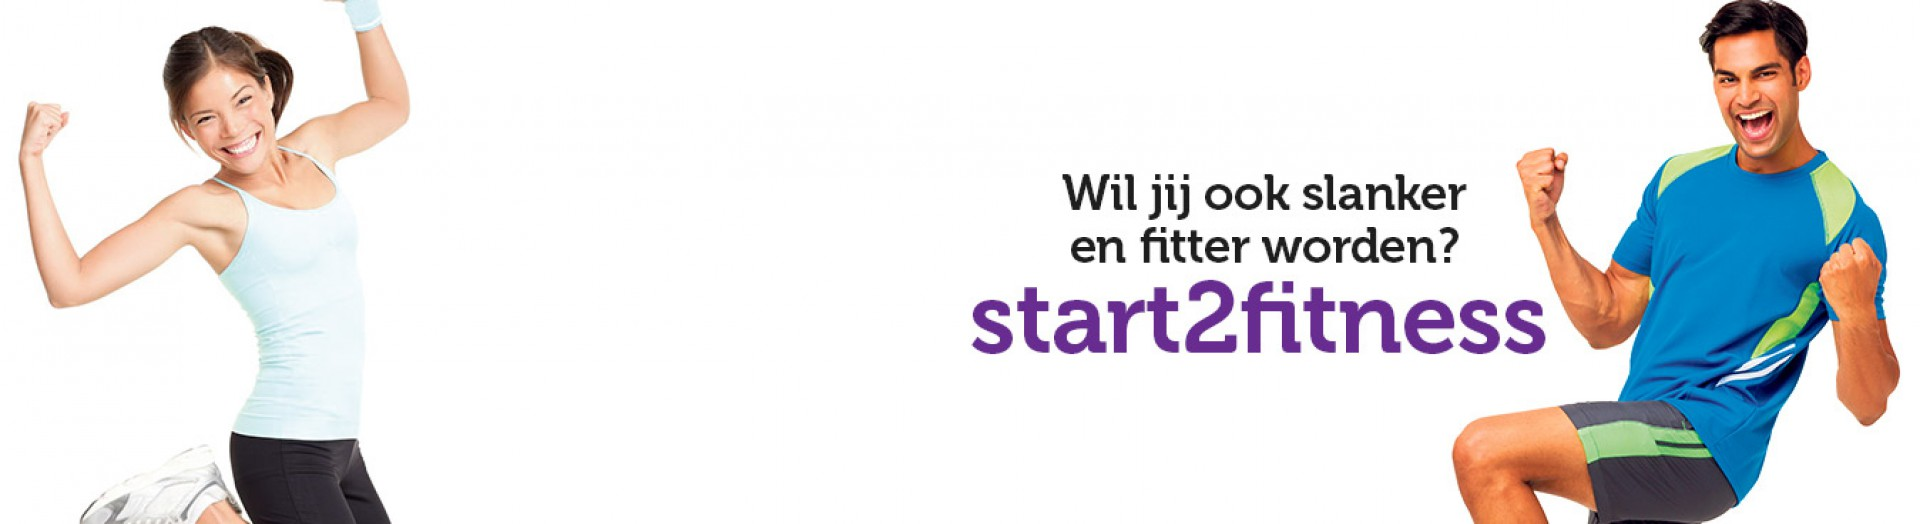 start2Fitness in 2019? Doe mee!